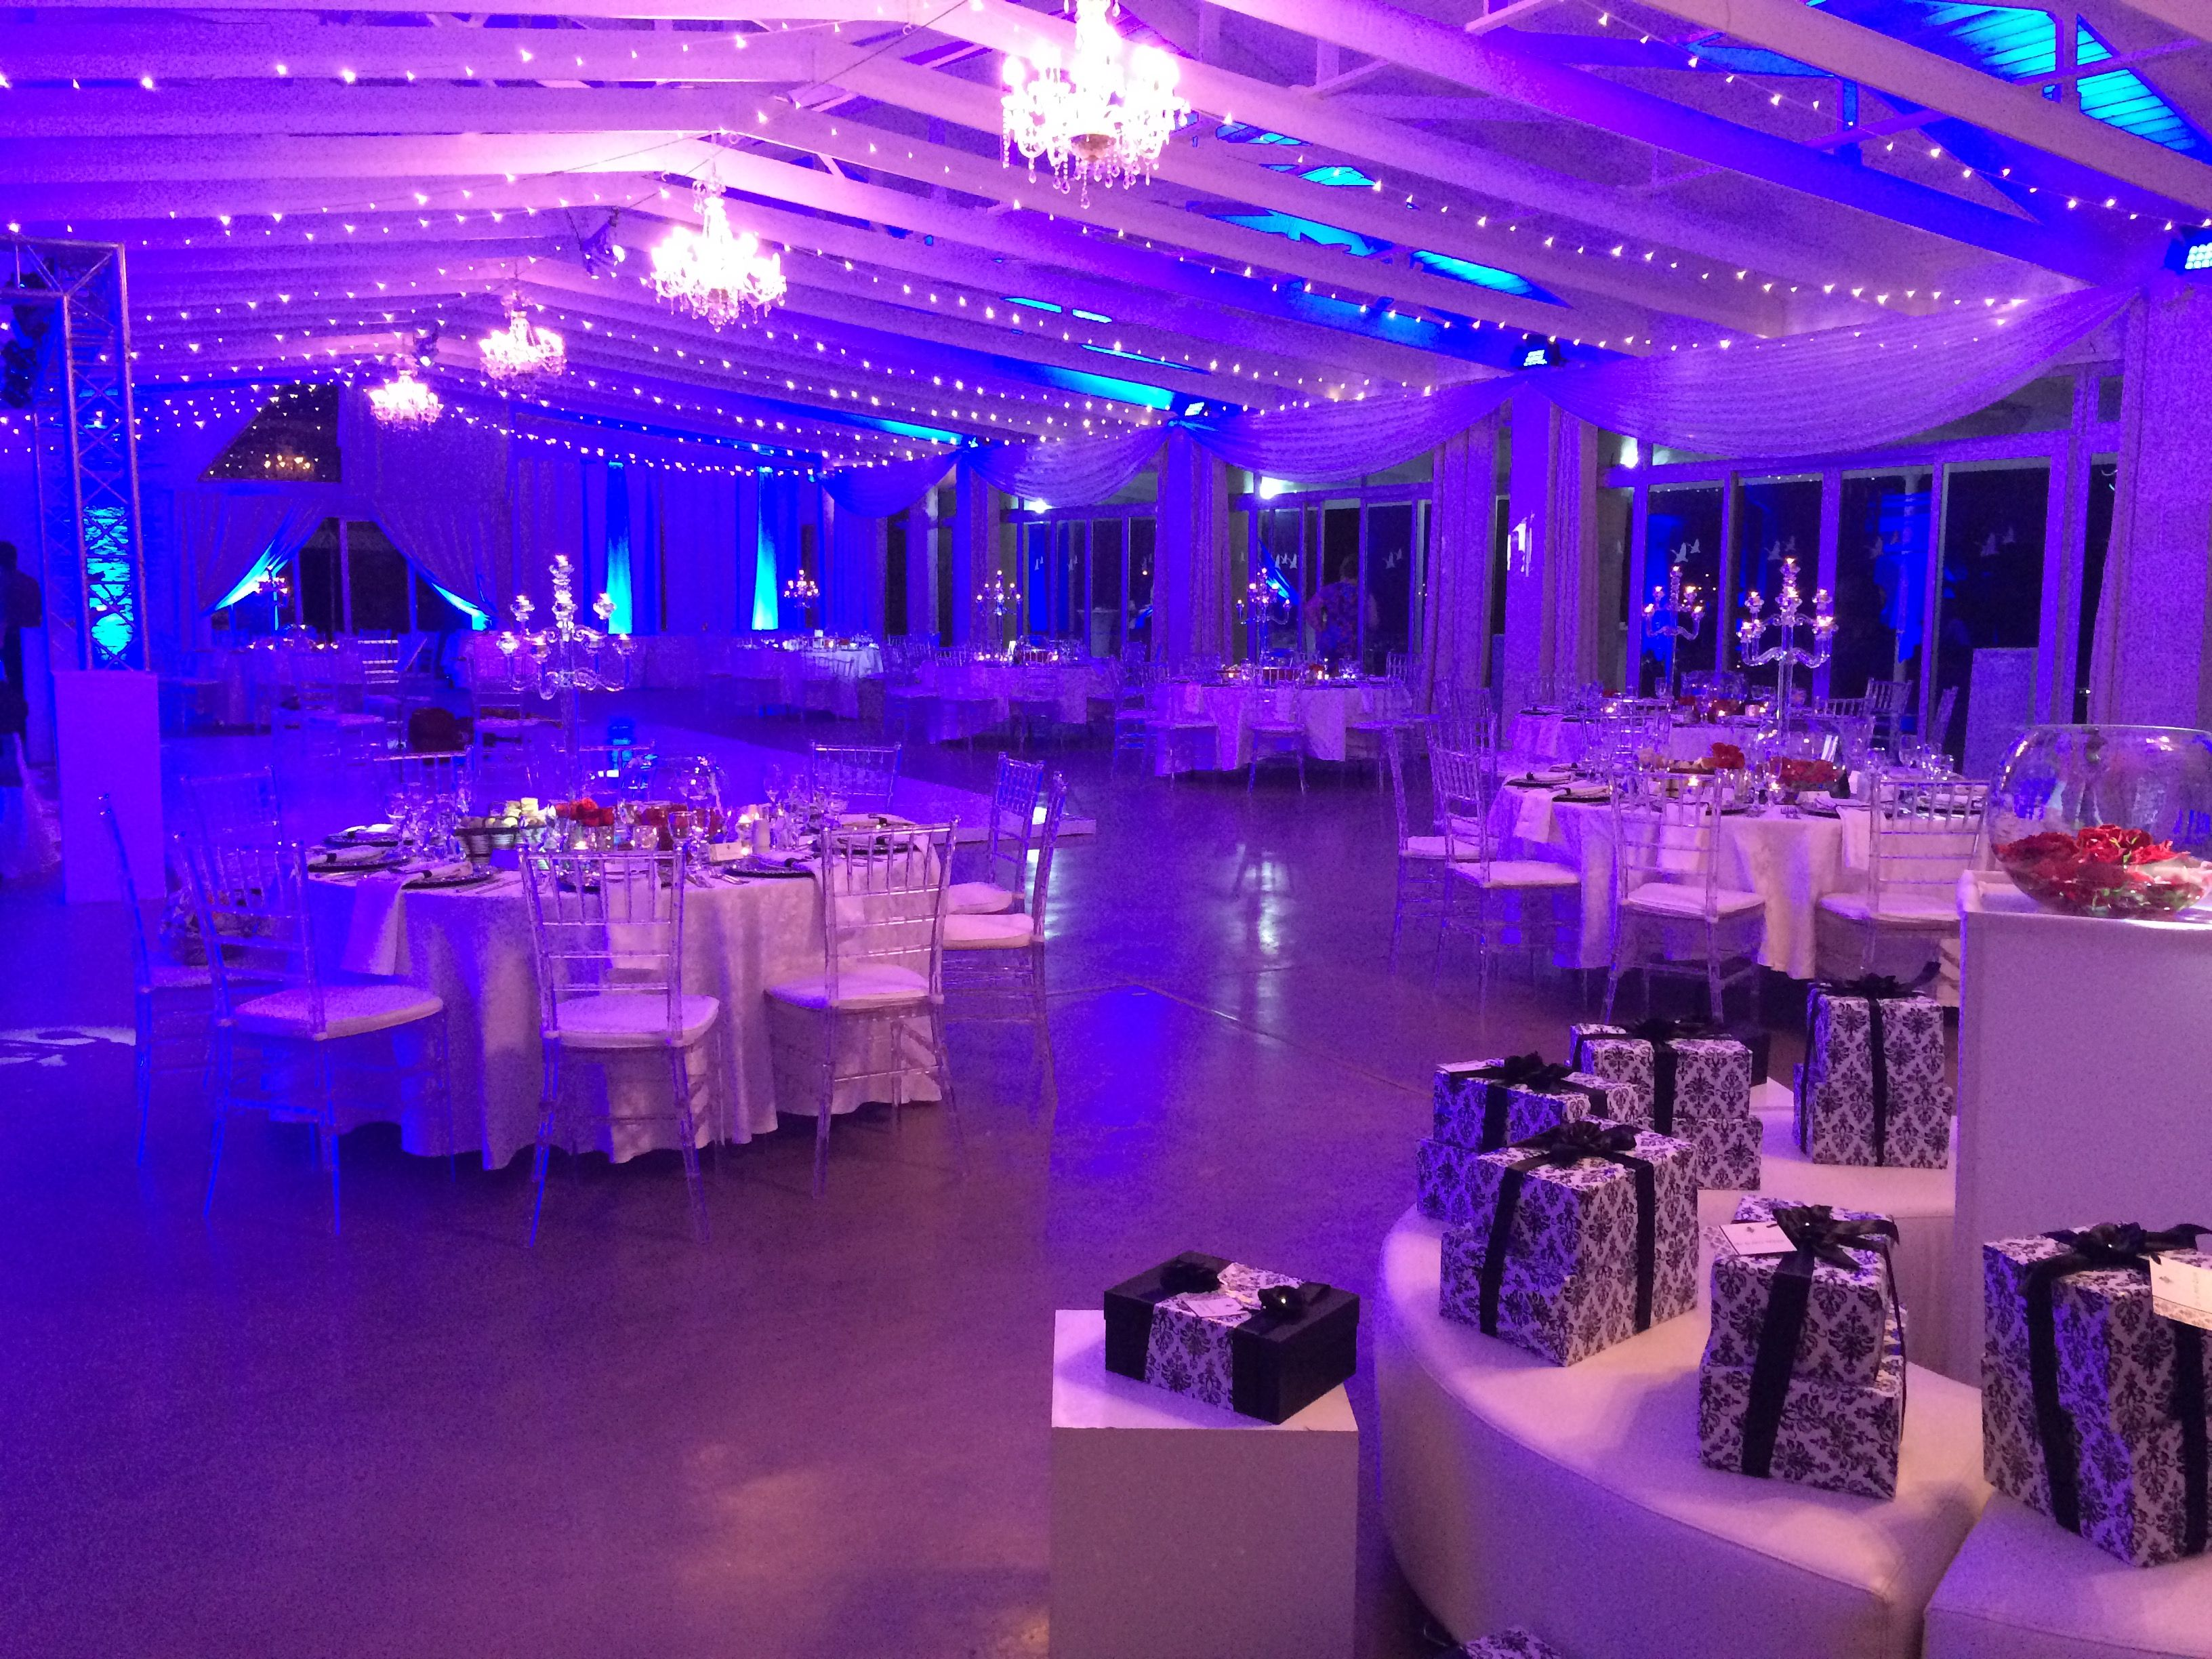 Wedding decor images zimbabwe  Chairmans End of Year Dinner WGL ZW Floral Decor by Tangerine Co ZW